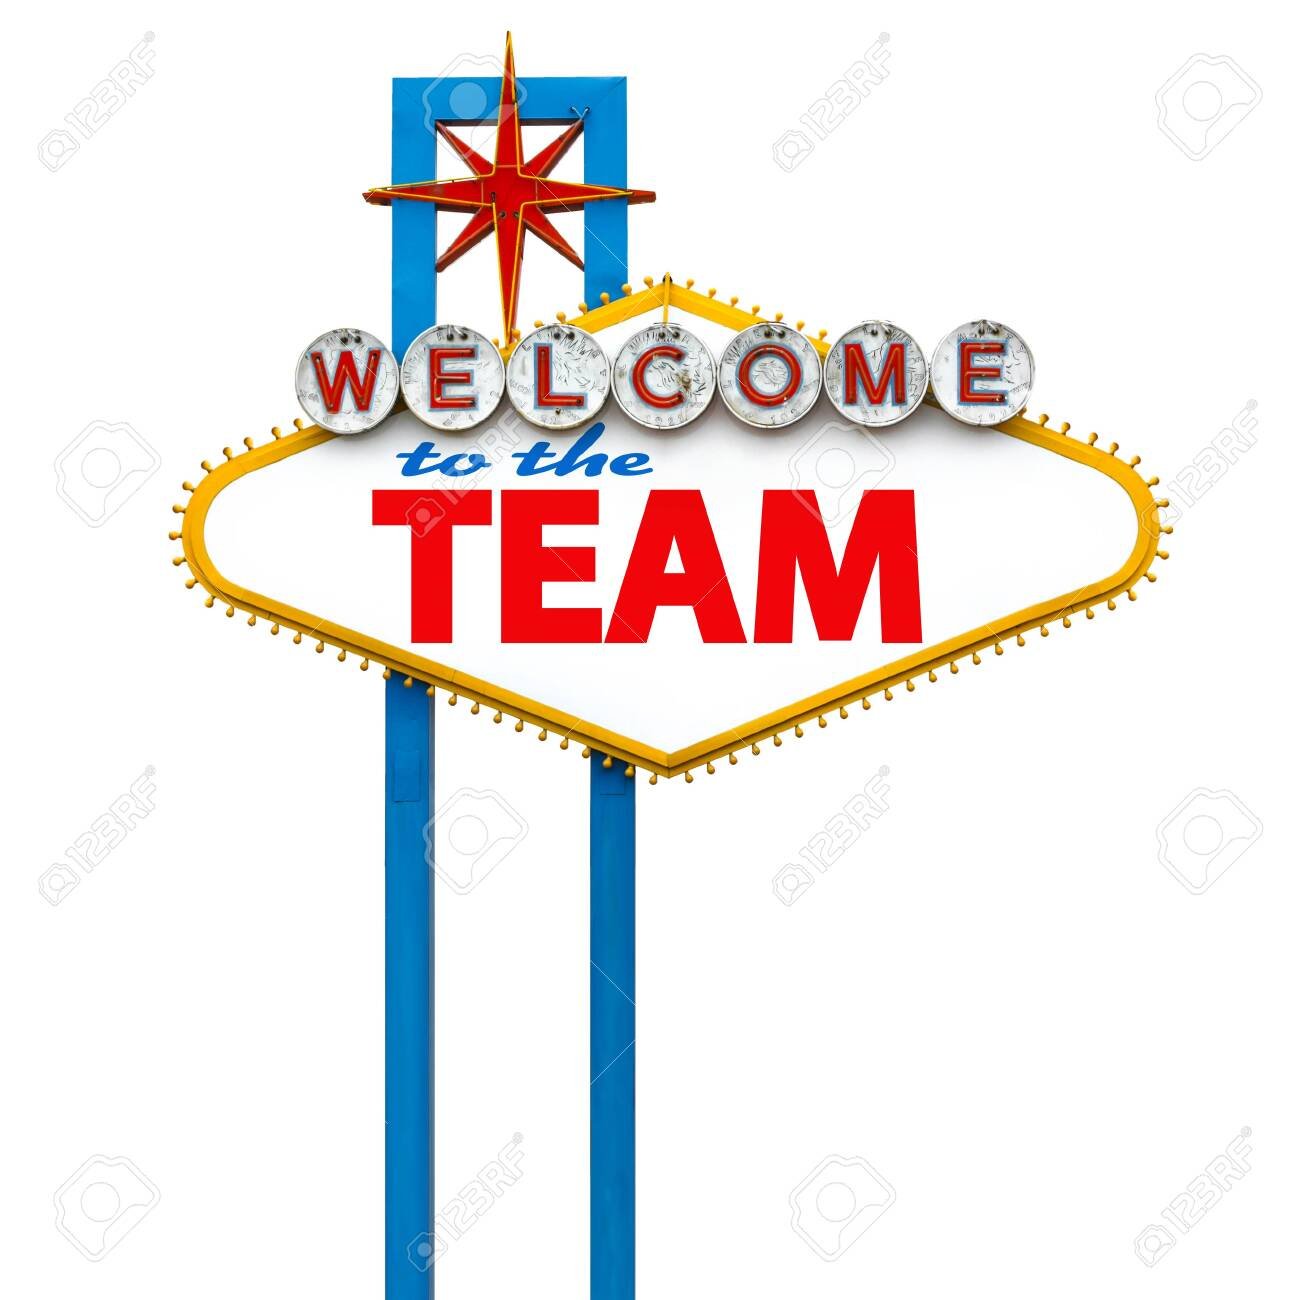 Welcome to the team on Las Vegas sign - 148992294